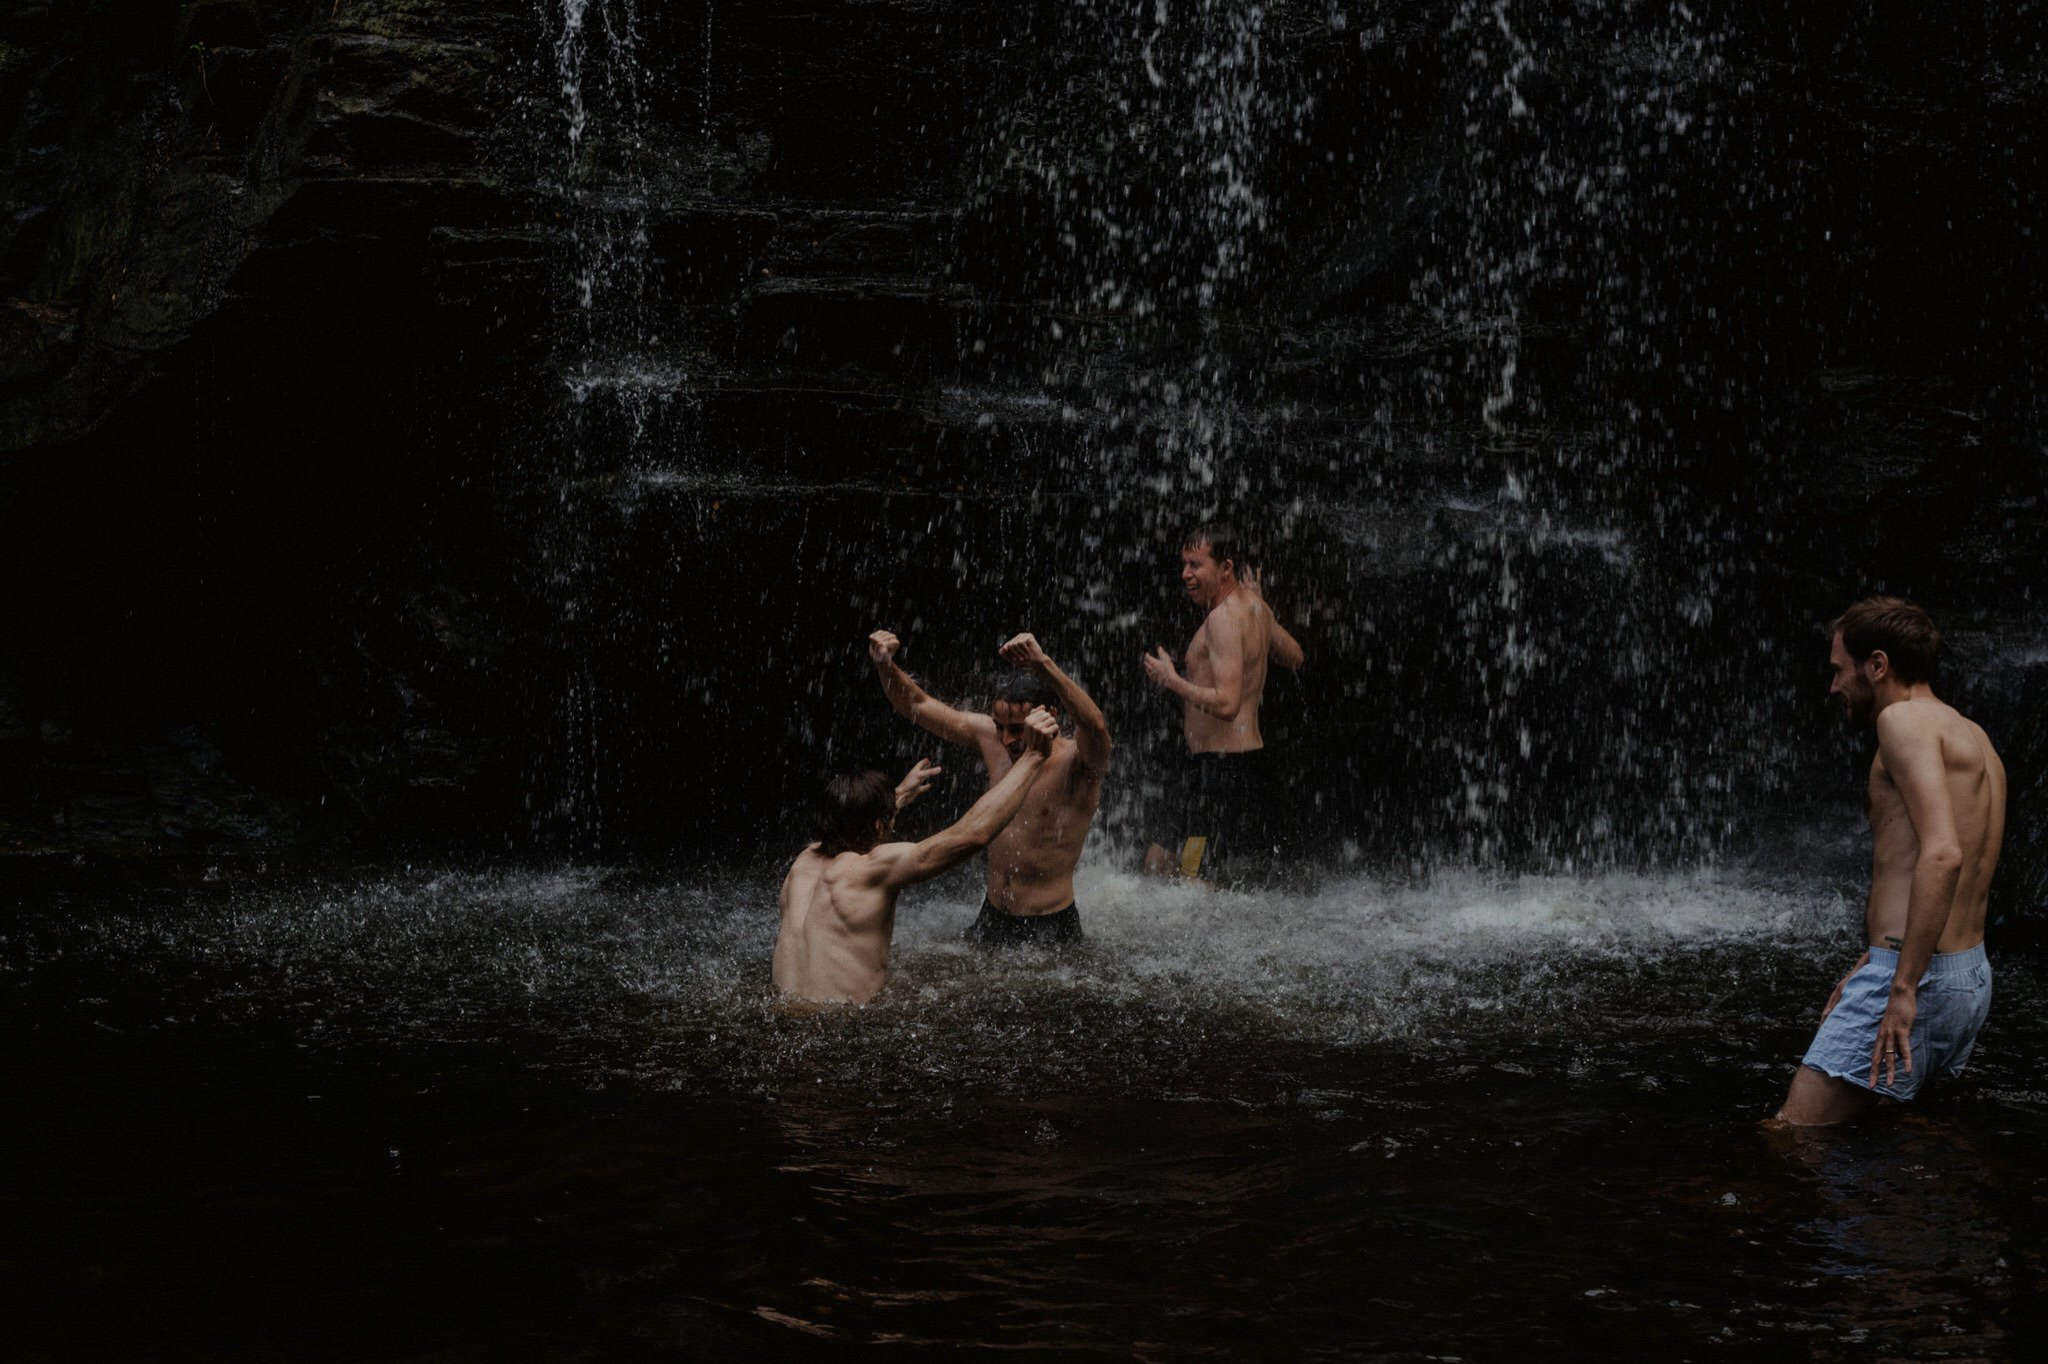 Groomsmen wild swimming after a wedding